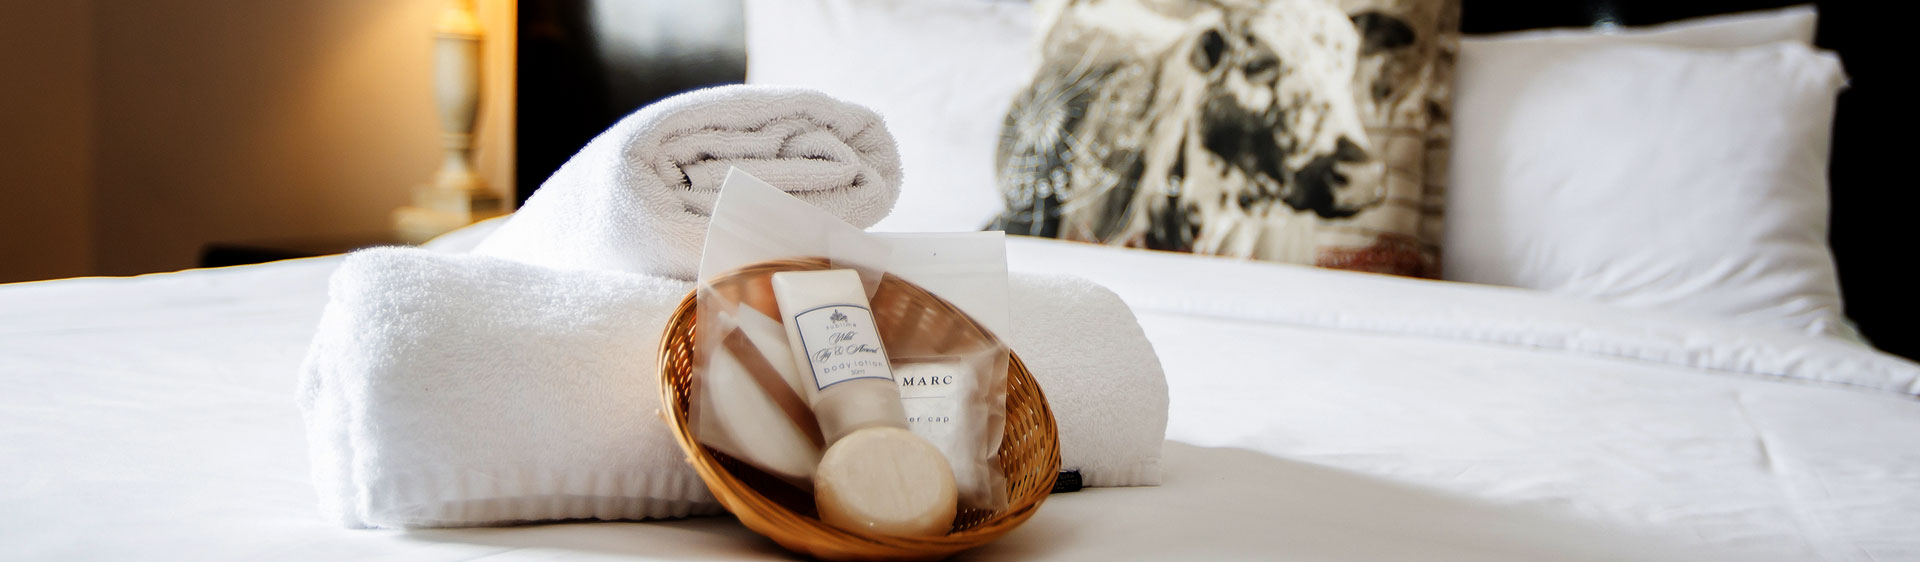 Oria Guesthouse beautiful scented toiletries